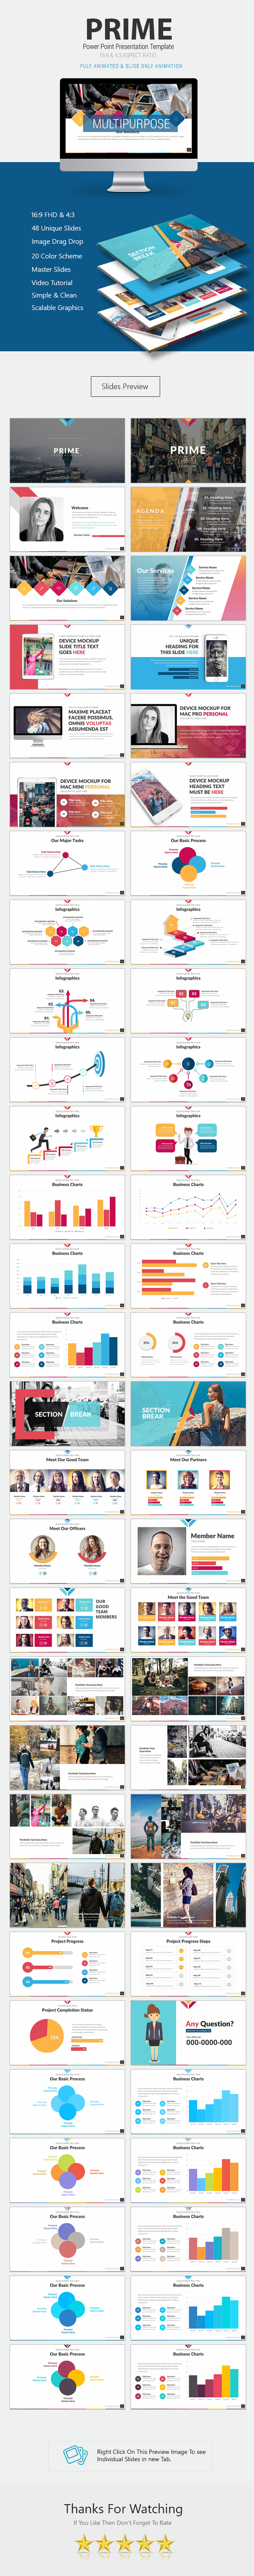 GraphicRiver Prime Power Point Presentation 21184339